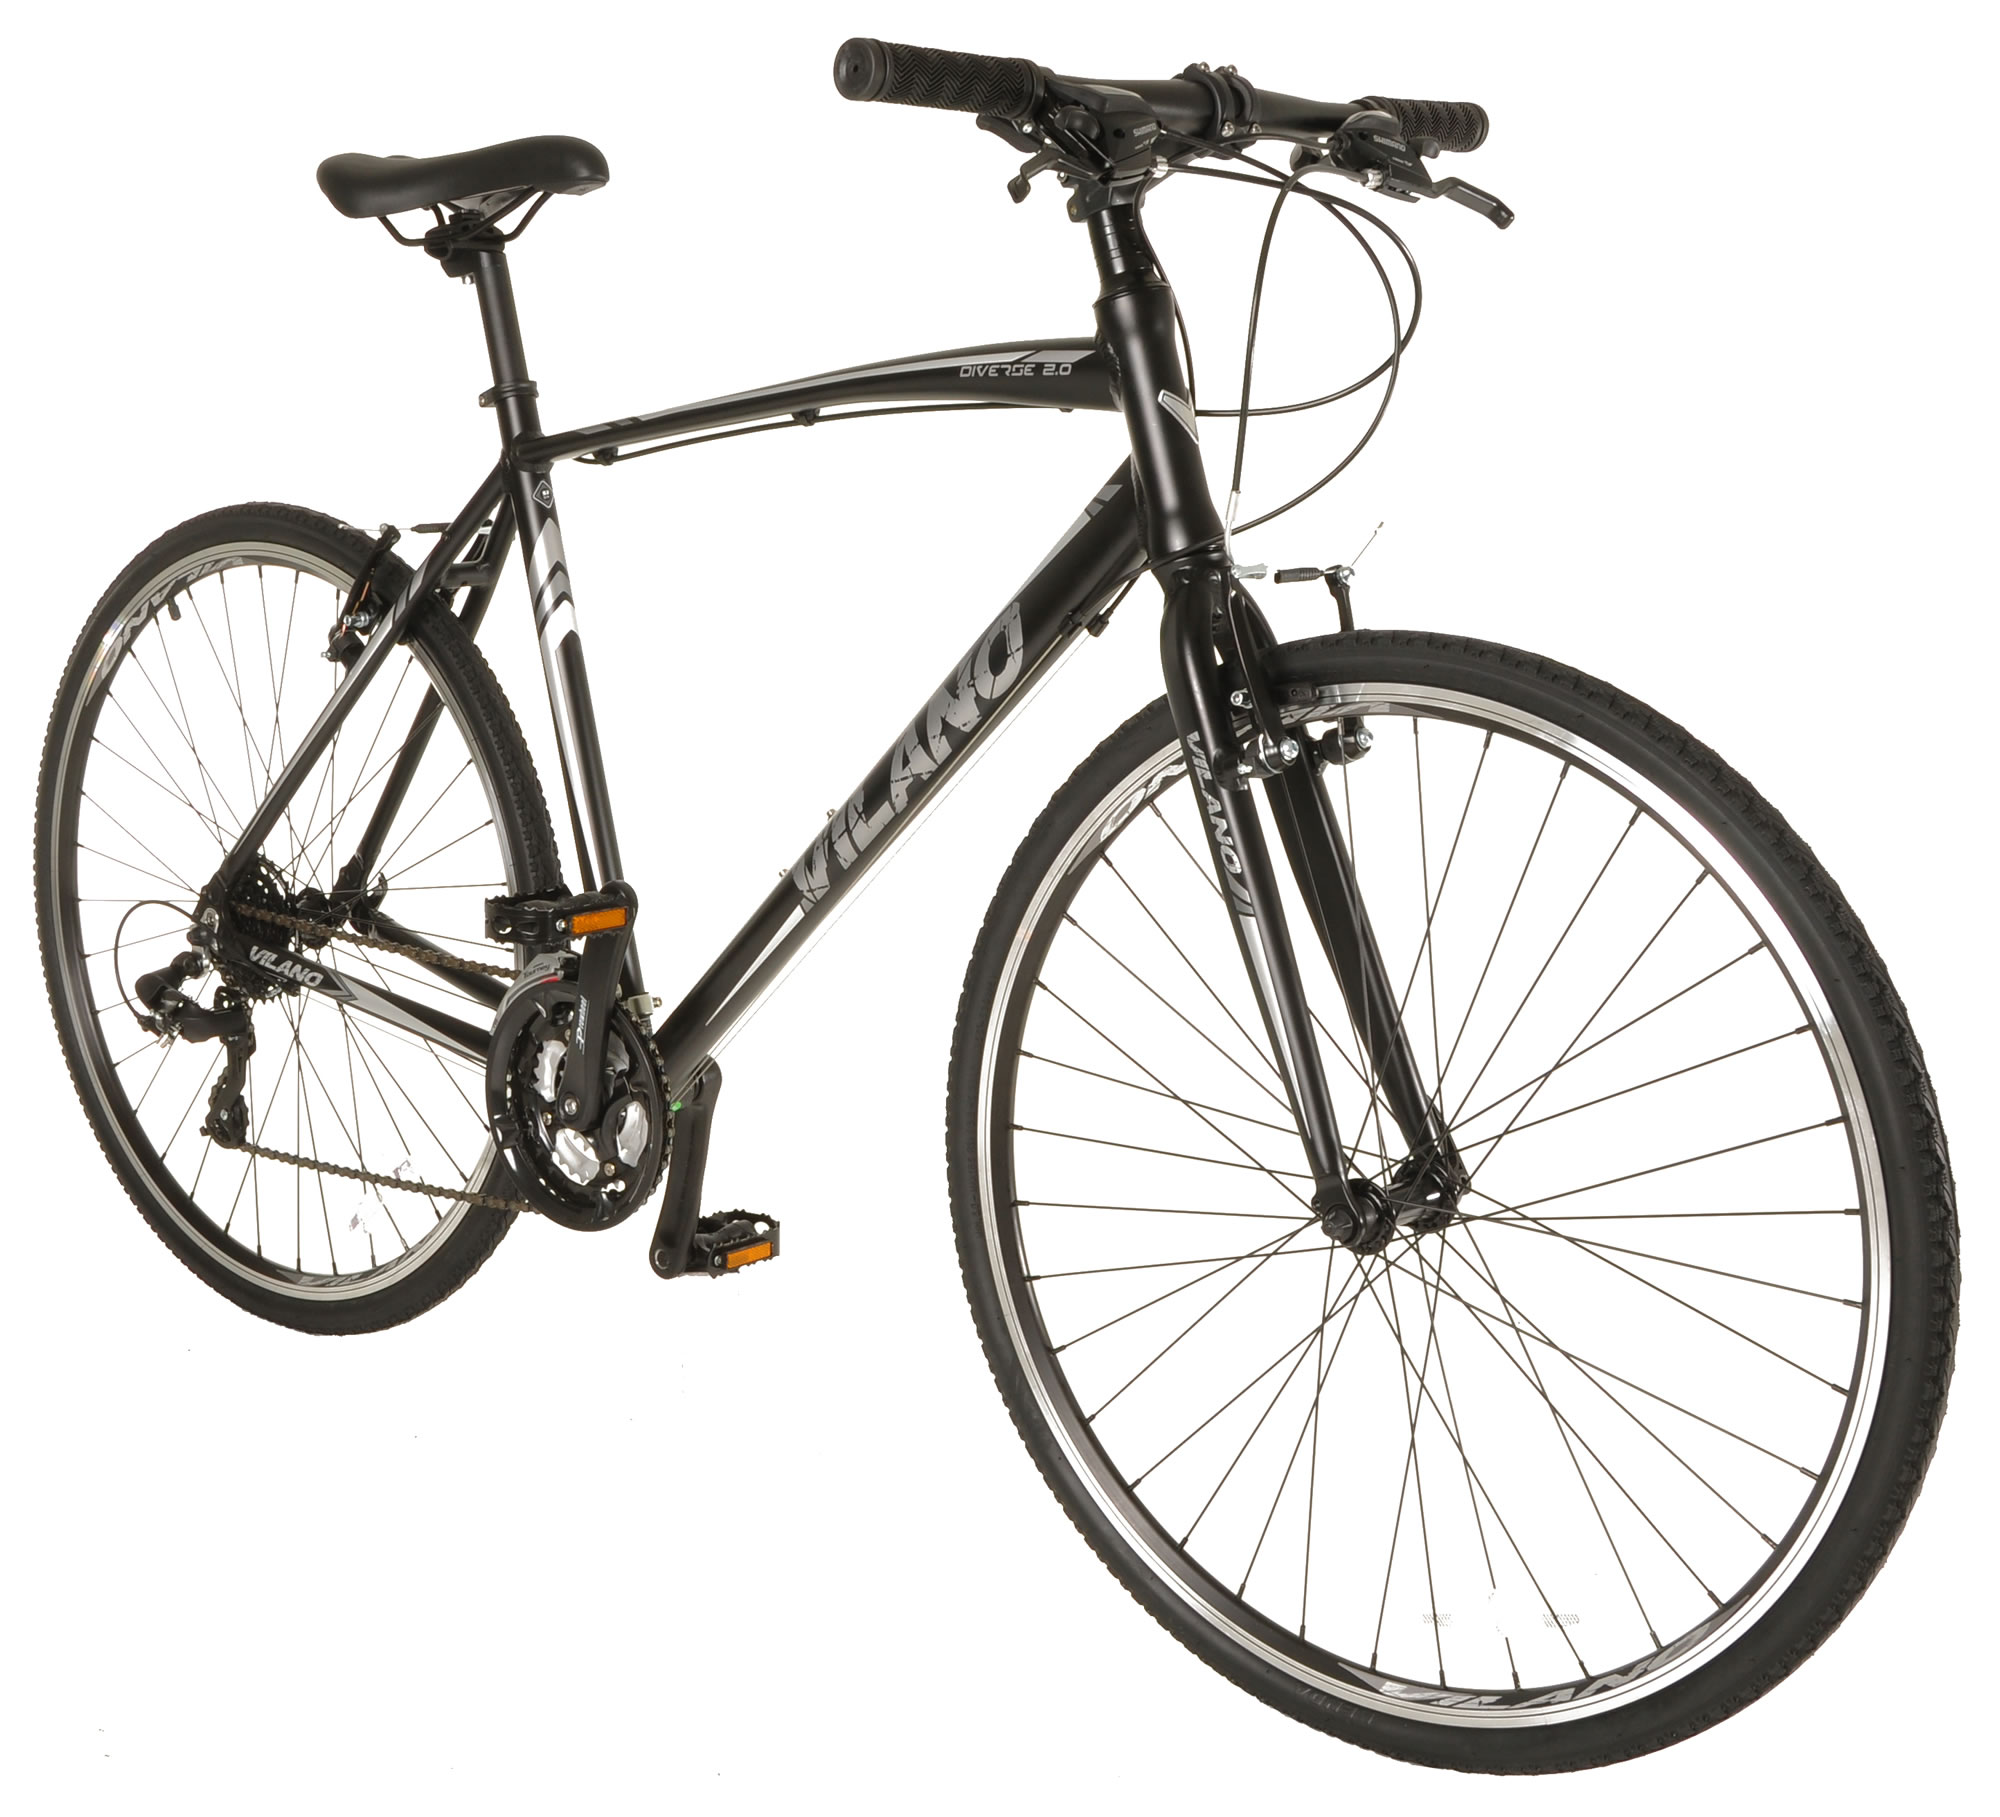 Vilano Diverse 2.0 Performance Hybrid Bike 24 Speed Shimano Road Bike 700c